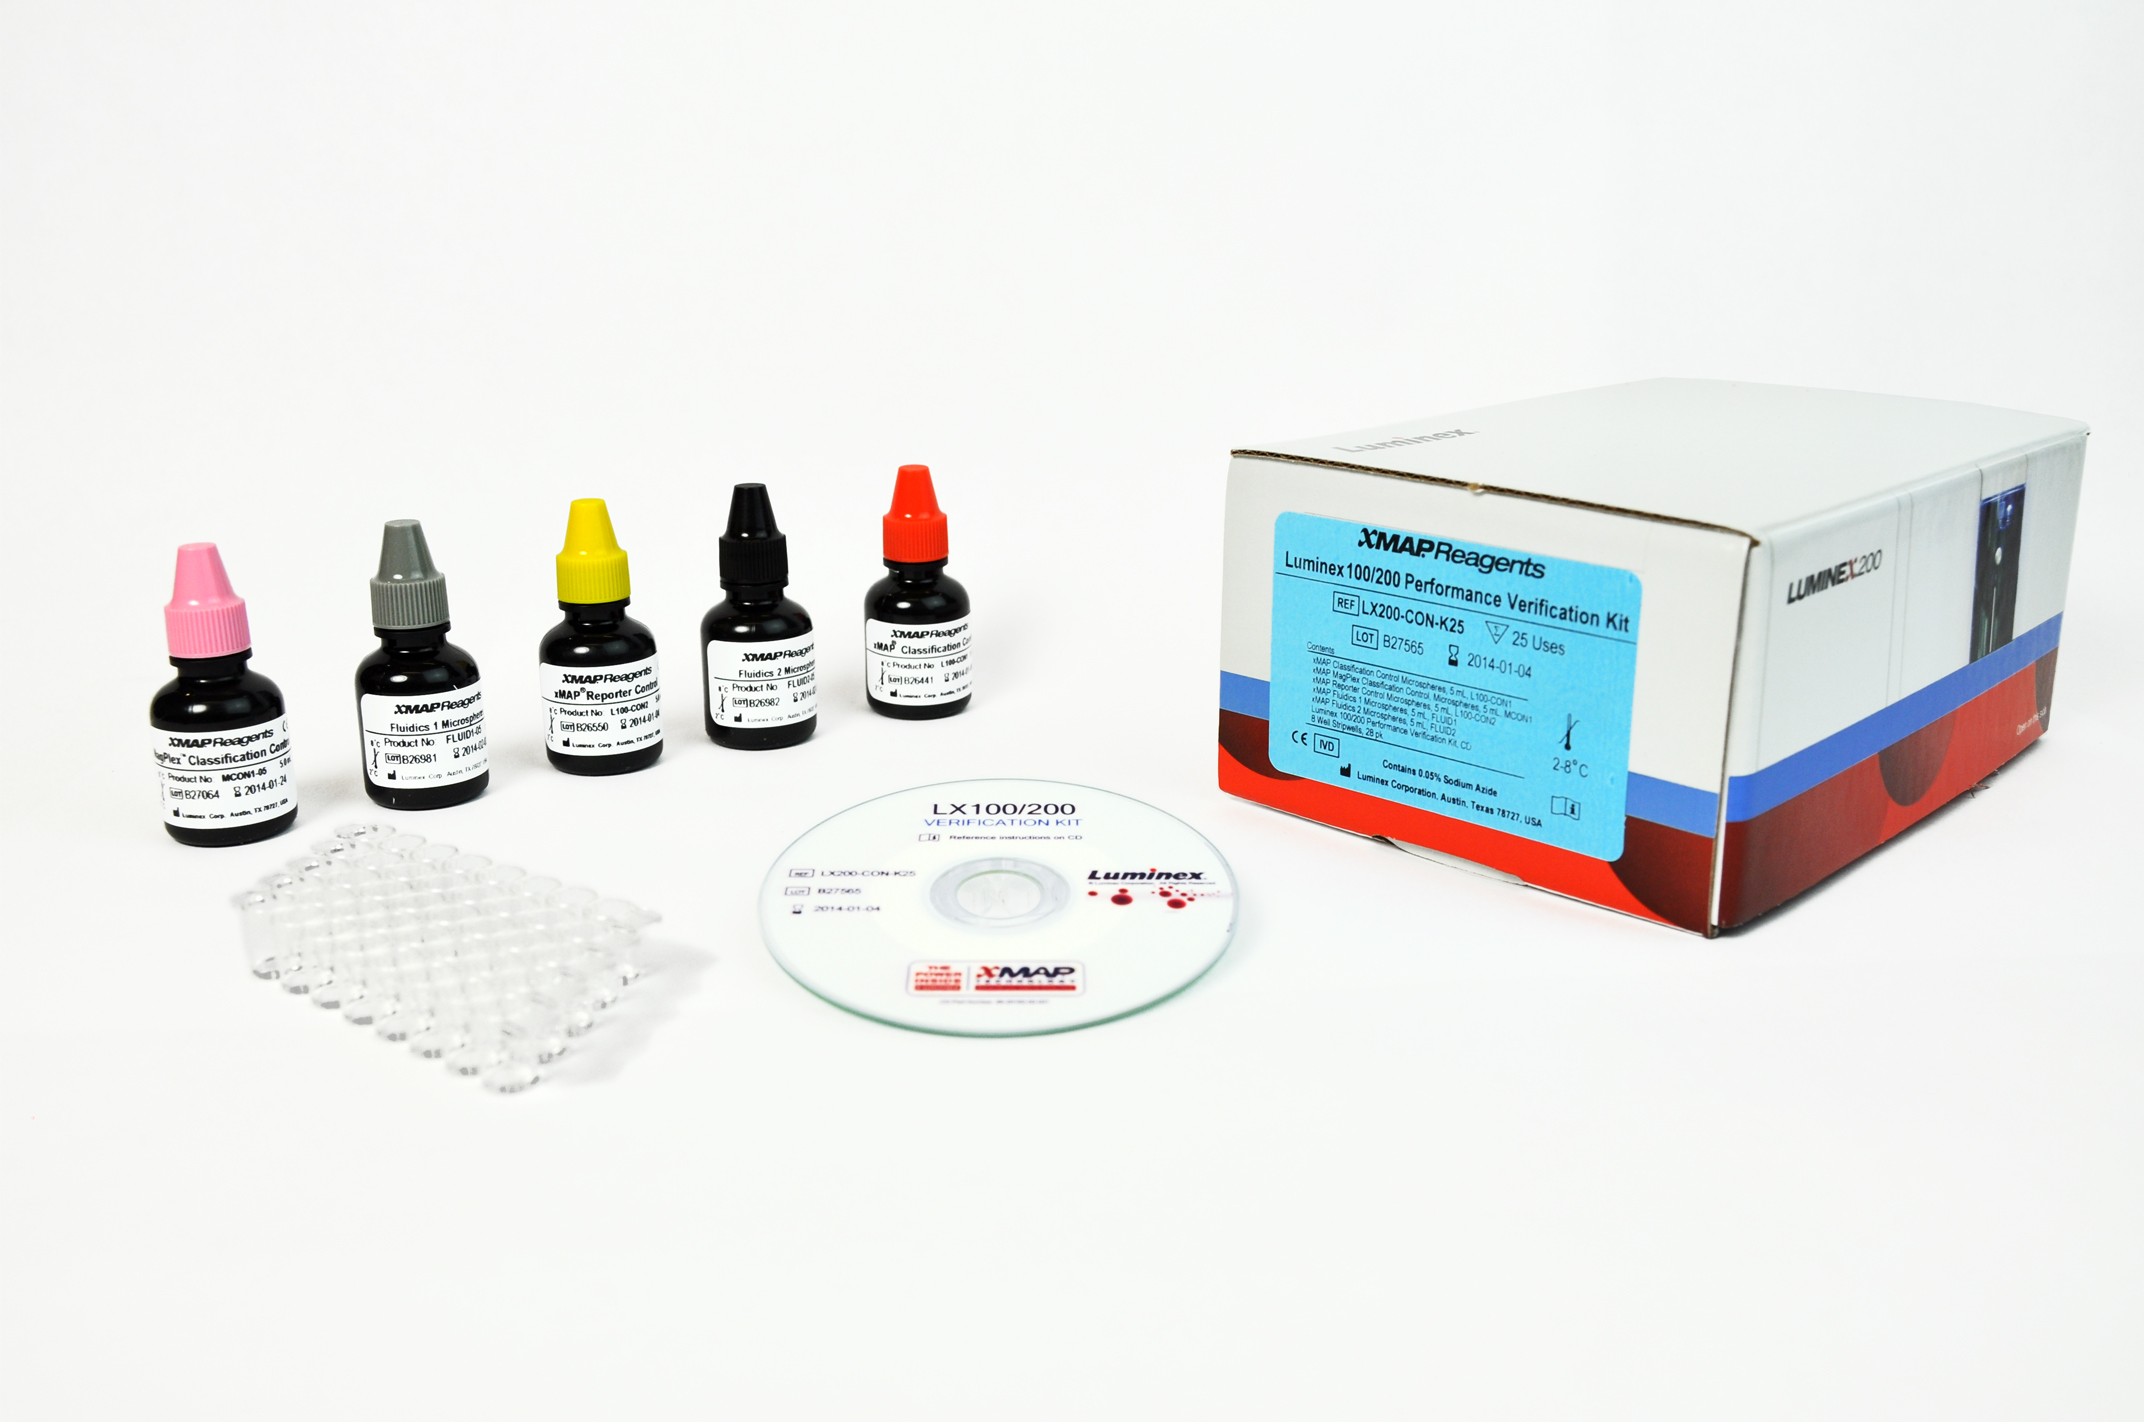 Luminex 100/200 Performance Verification Kit